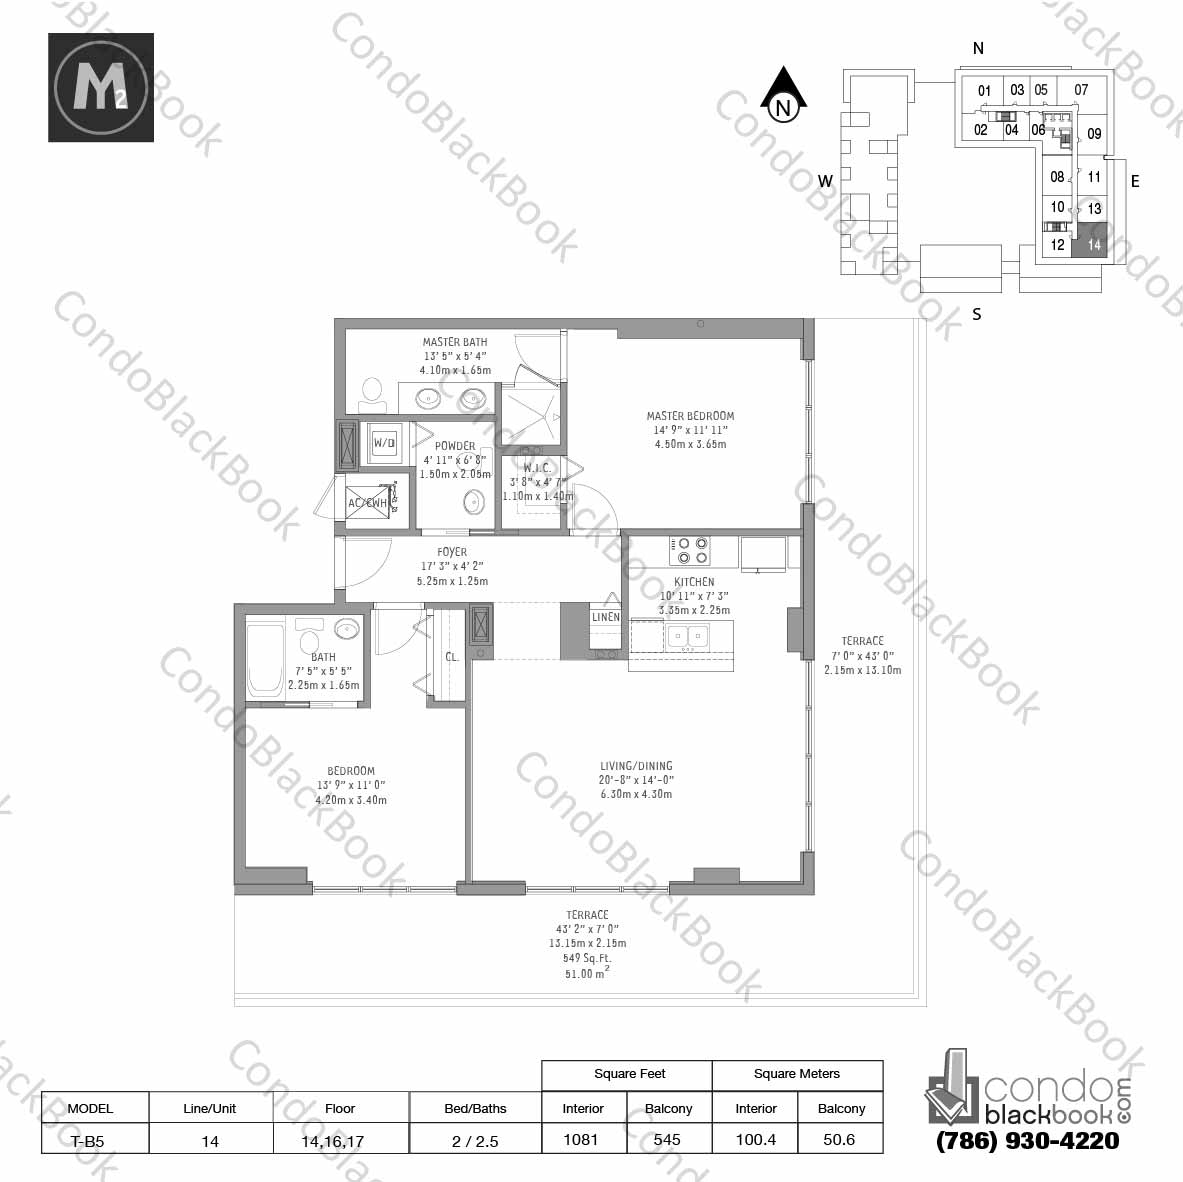 Floor plan for Midtown 2 Midtown Miami, model T-B5, line 14, 2 / 2.5 bedrooms, 1081 sq ft